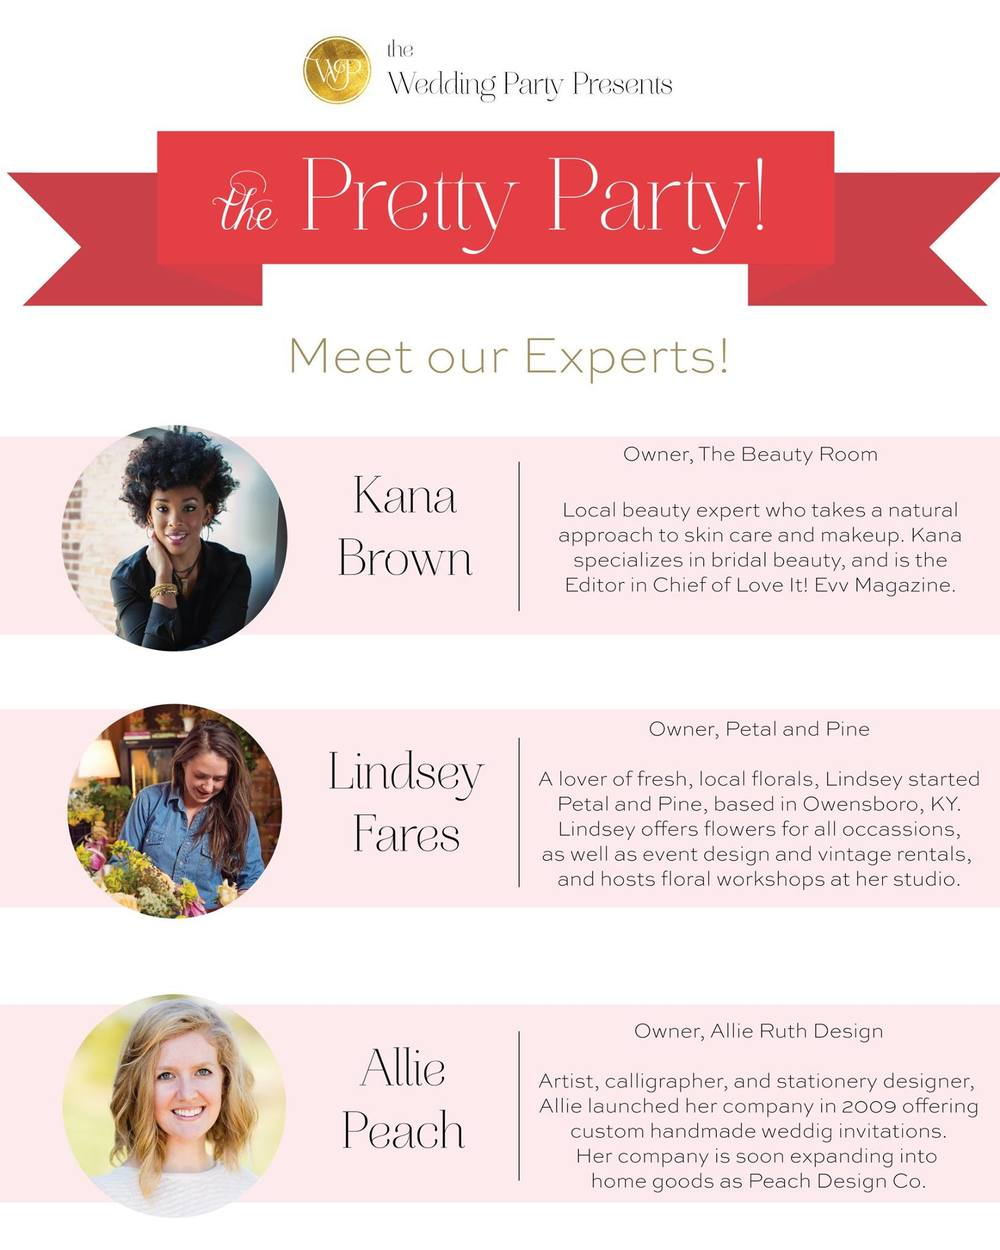 Photoshoot Dreams and DIY Queens: The Wedding Party Evansville ...